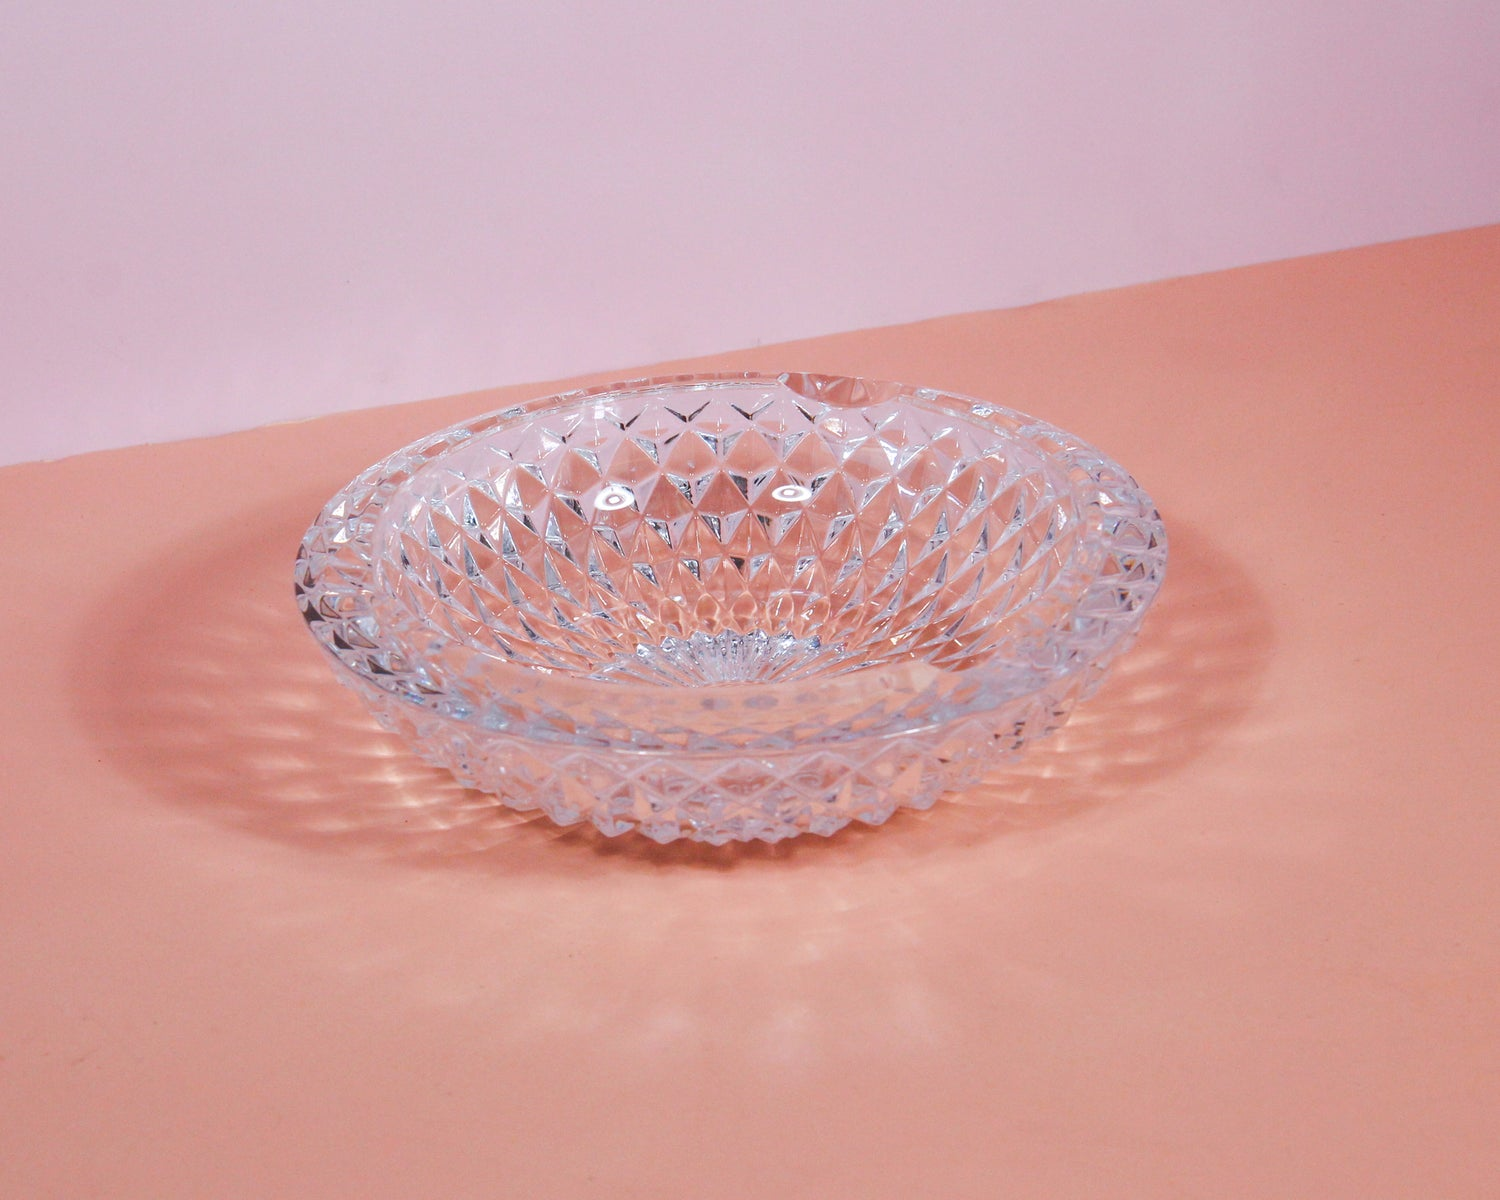 Image of Crystal Glass Geodesic Cigar Ashtray